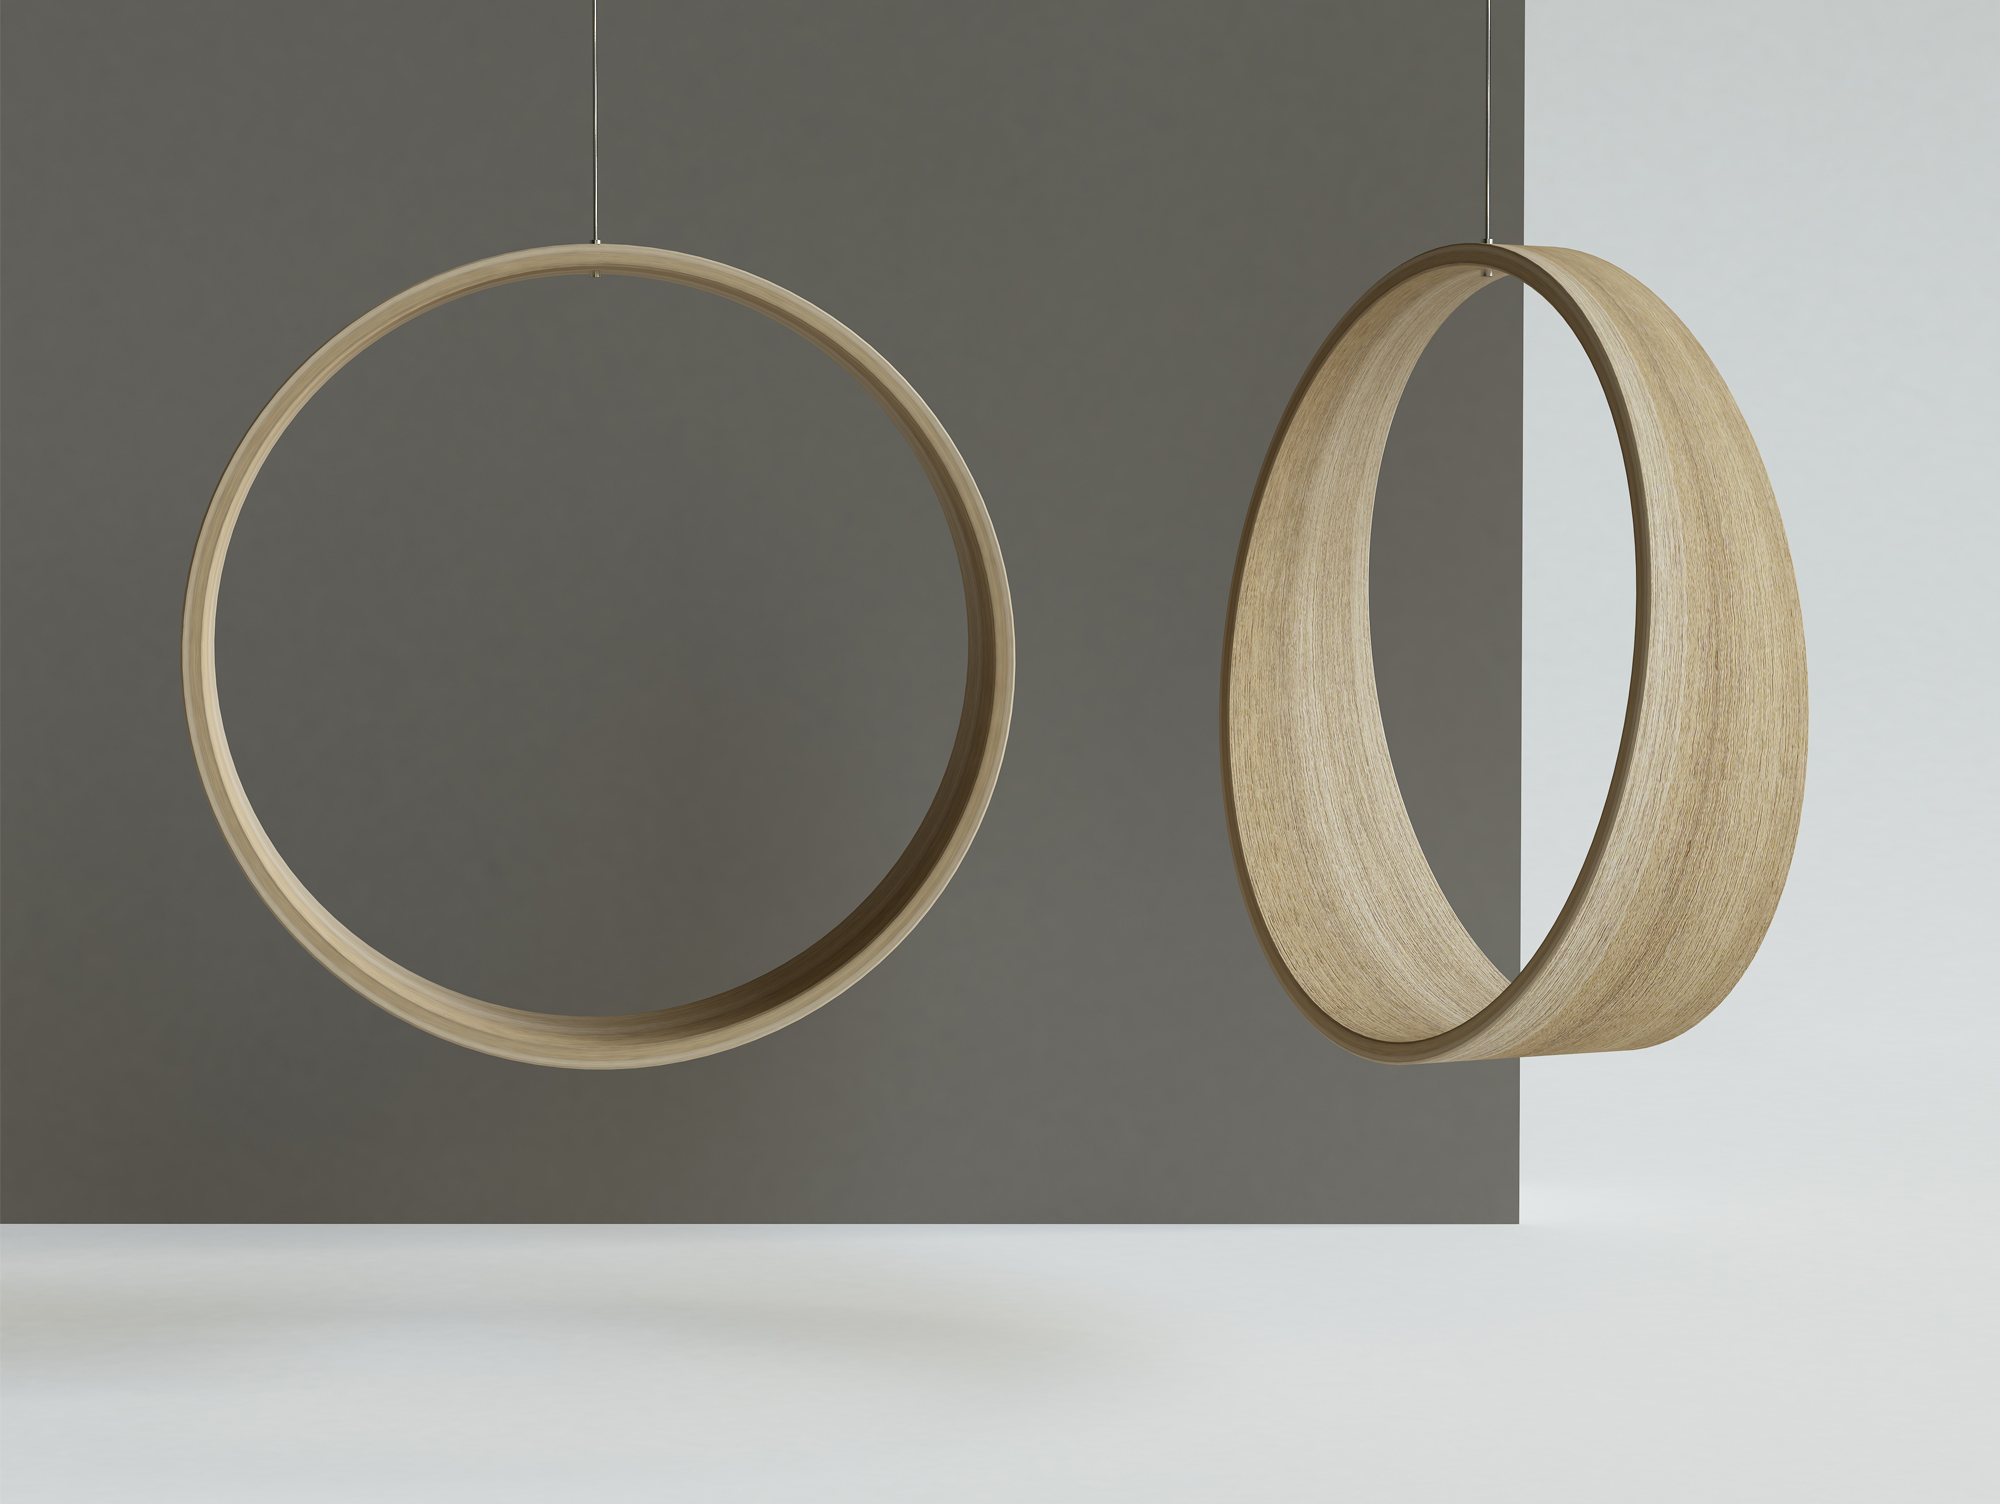 circle swing model n2 acts as a gentle rocking chair  Designboom Shop